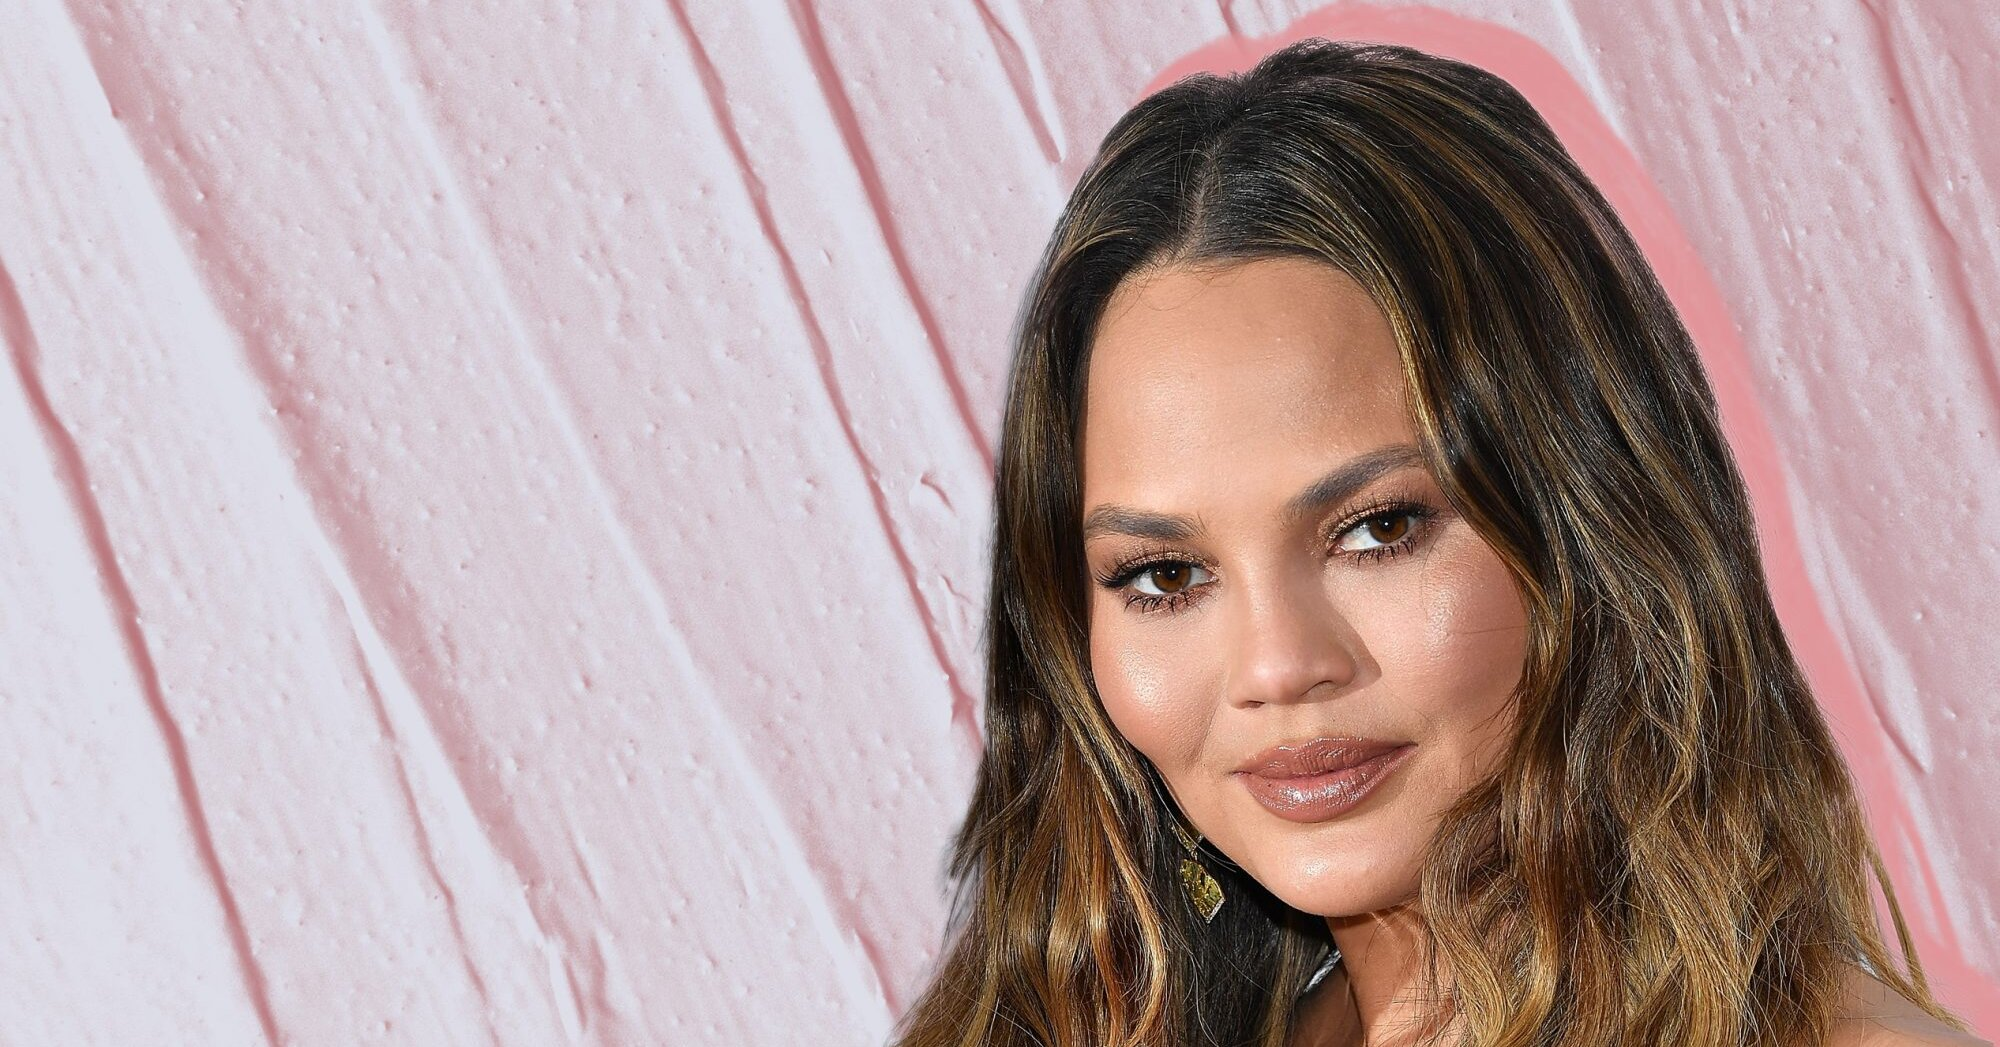 Chrissy Teigen's Face Mask Selfie Will Inspire You to Up Your Skincare Game